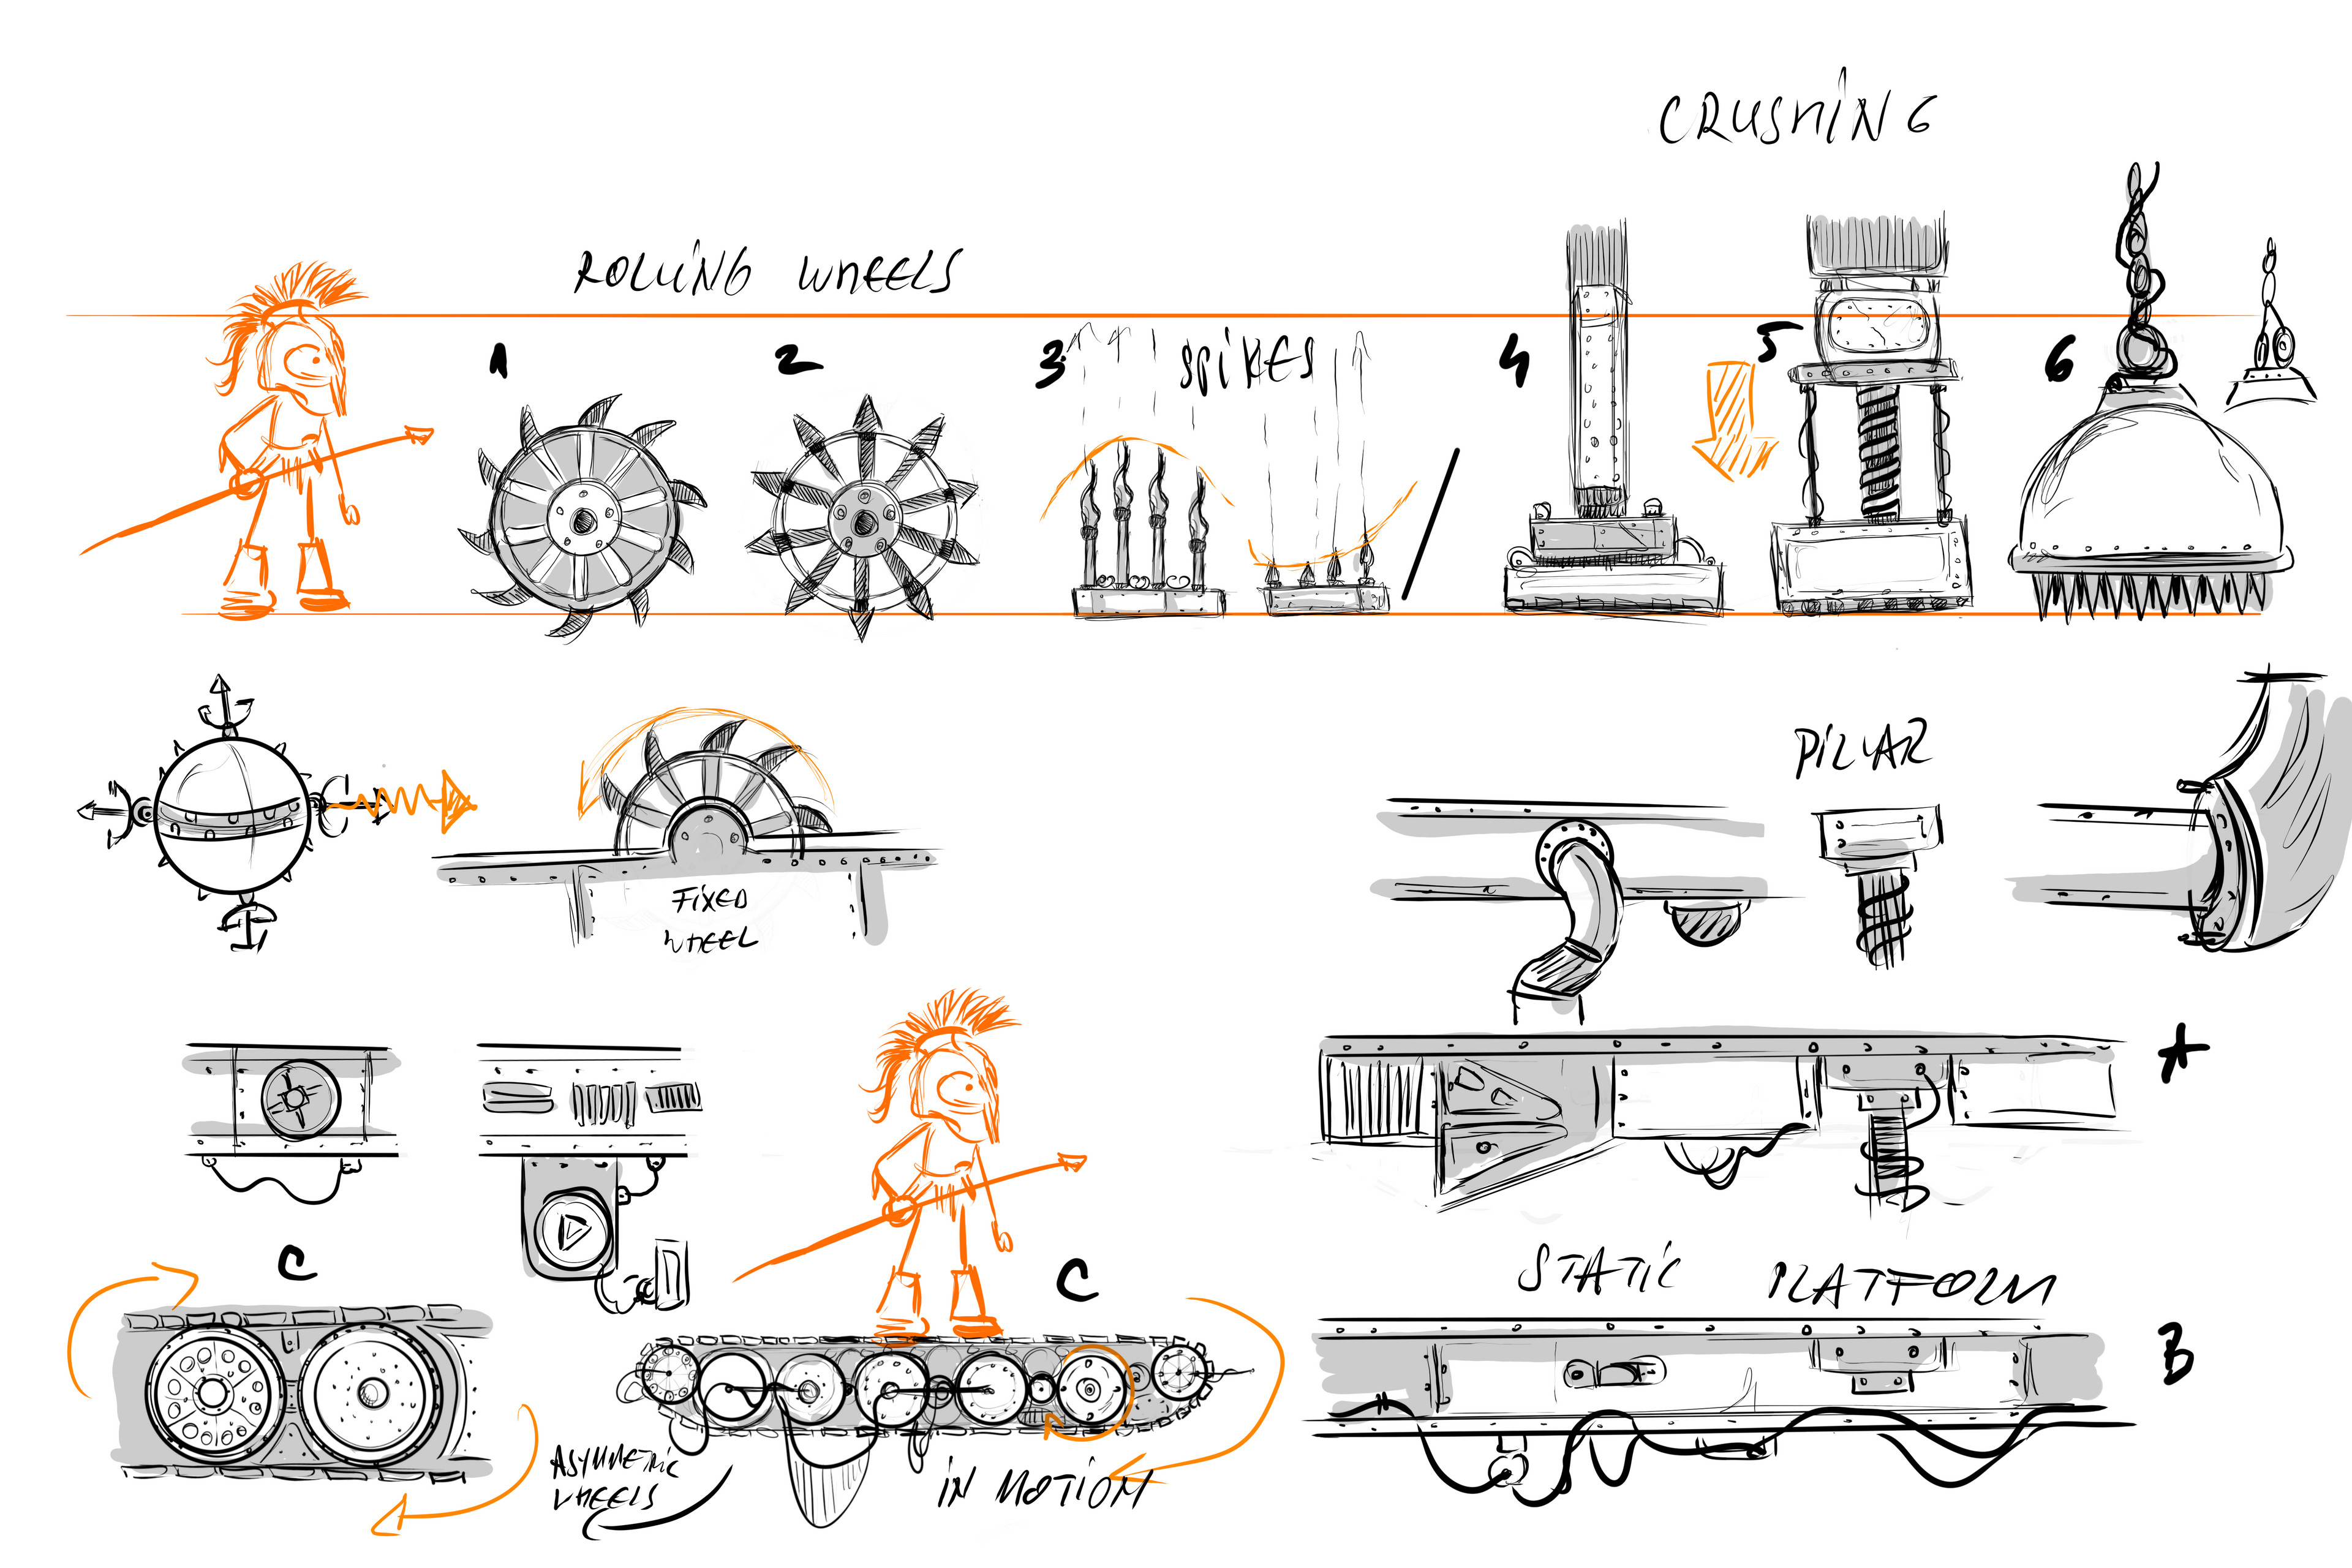 Environment early concept sheet, Double Moon, platform and obstacle